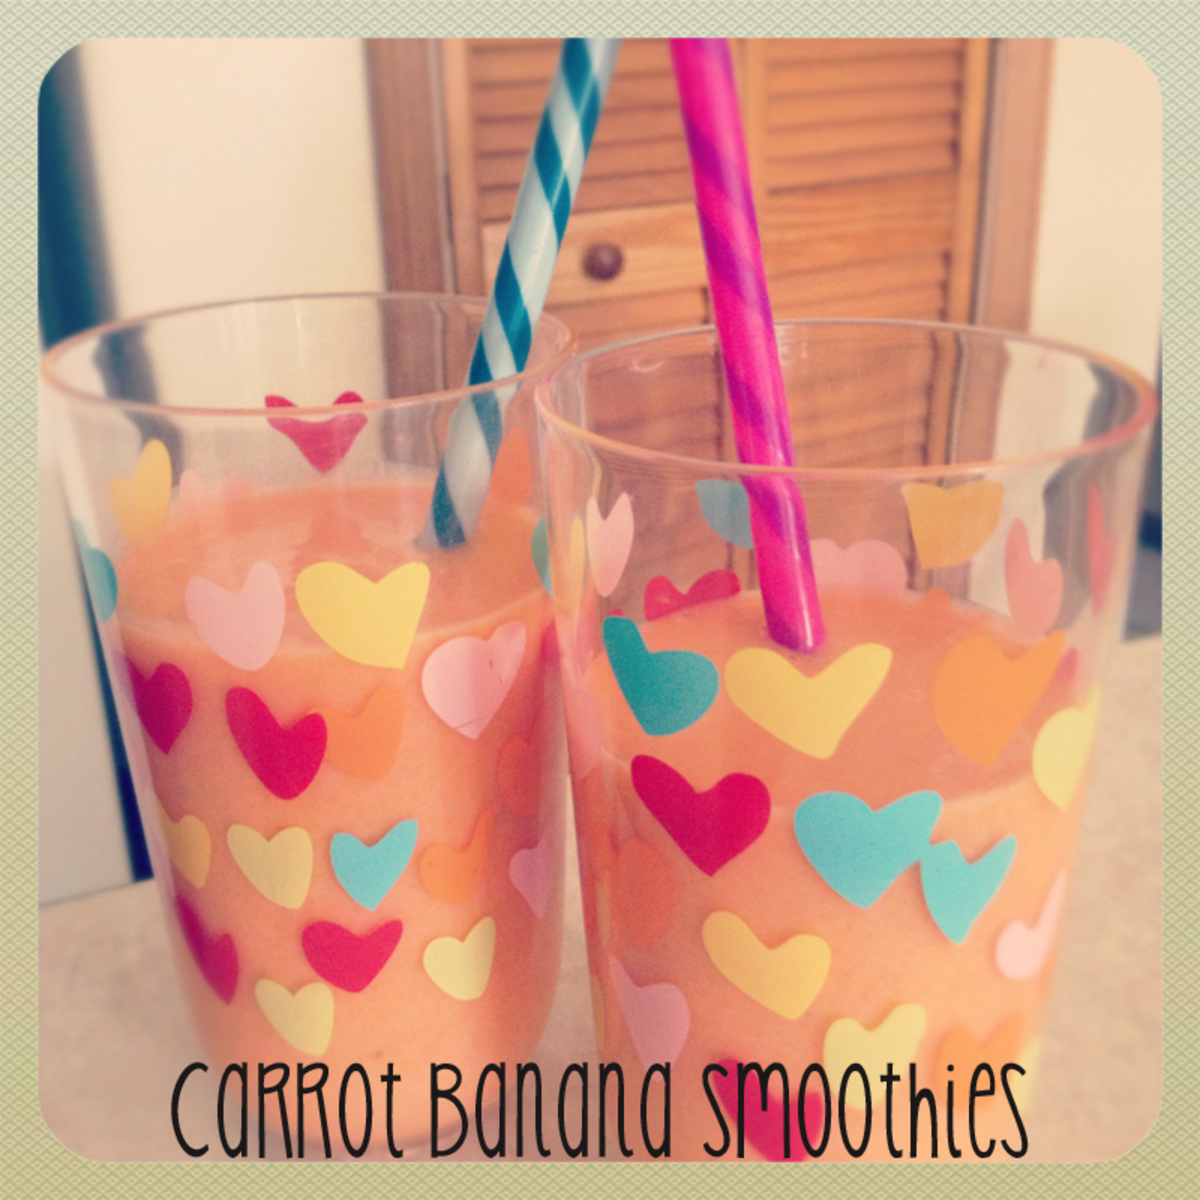 Carrot Banana Smoothie Recipe